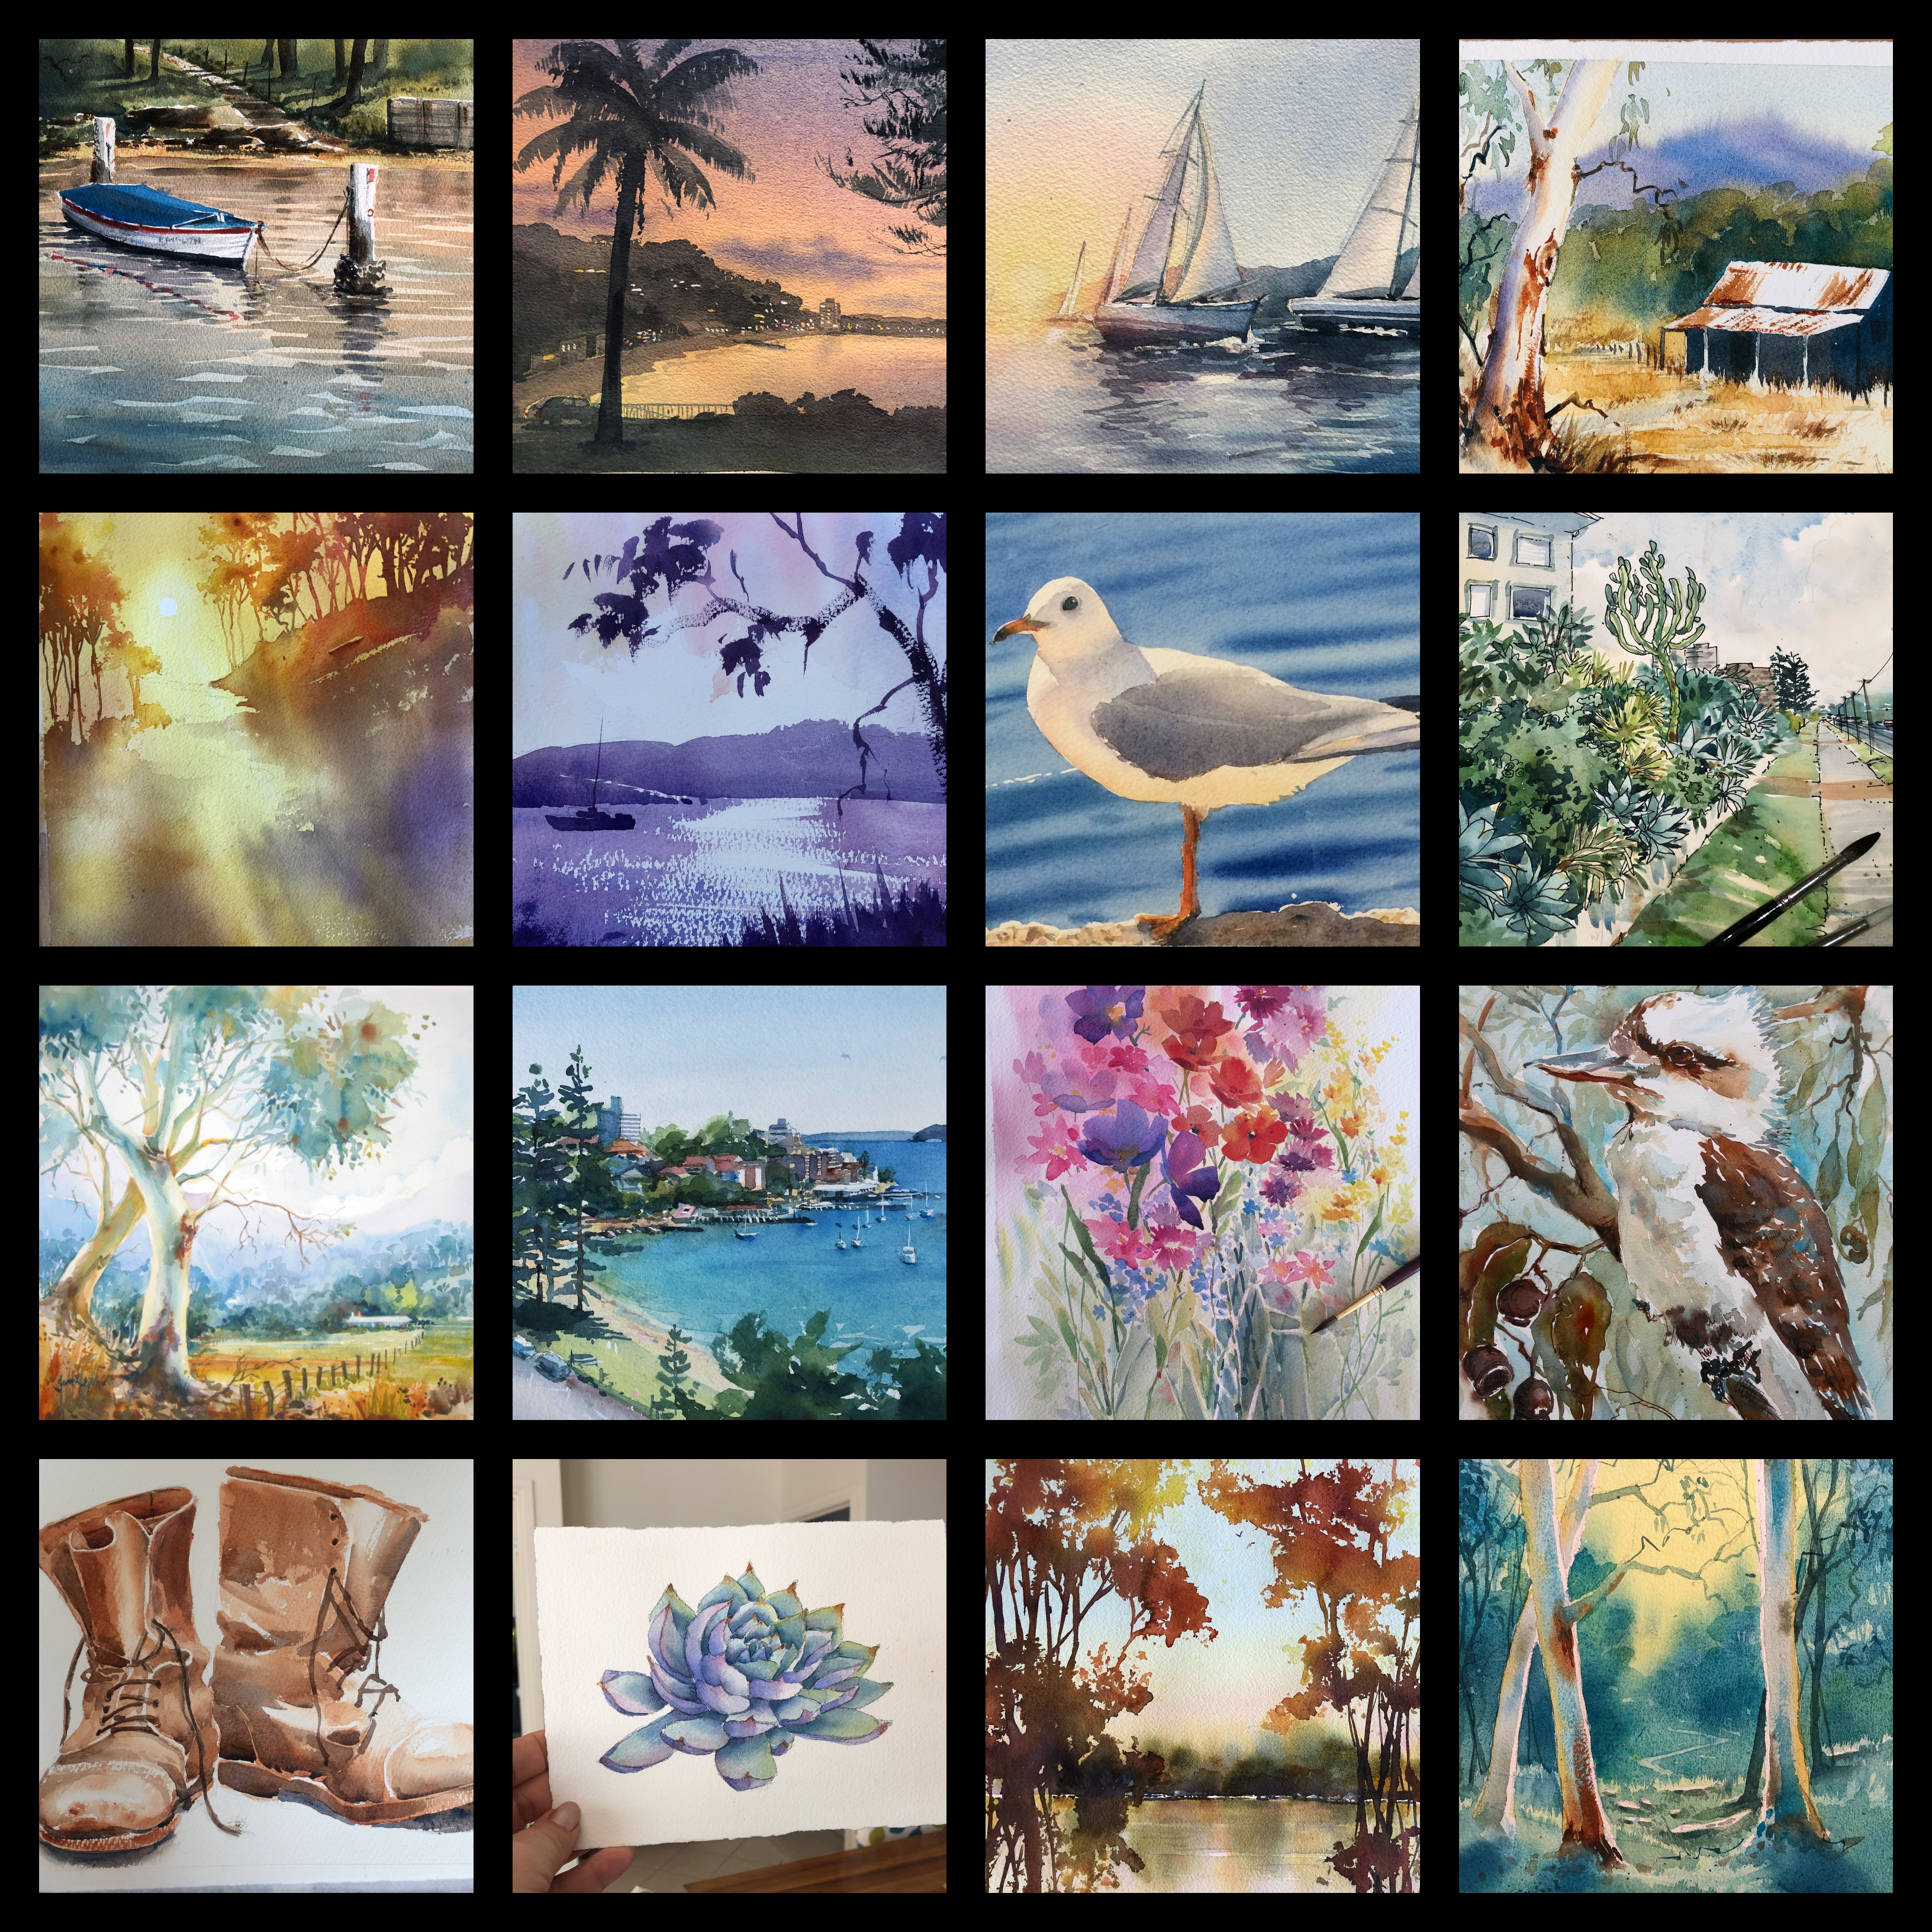 Online Watercolour Classes, tutorial Workshops Online for beginners with Jenny Gilchrist - see some of Jenny's watercolour paintings here.